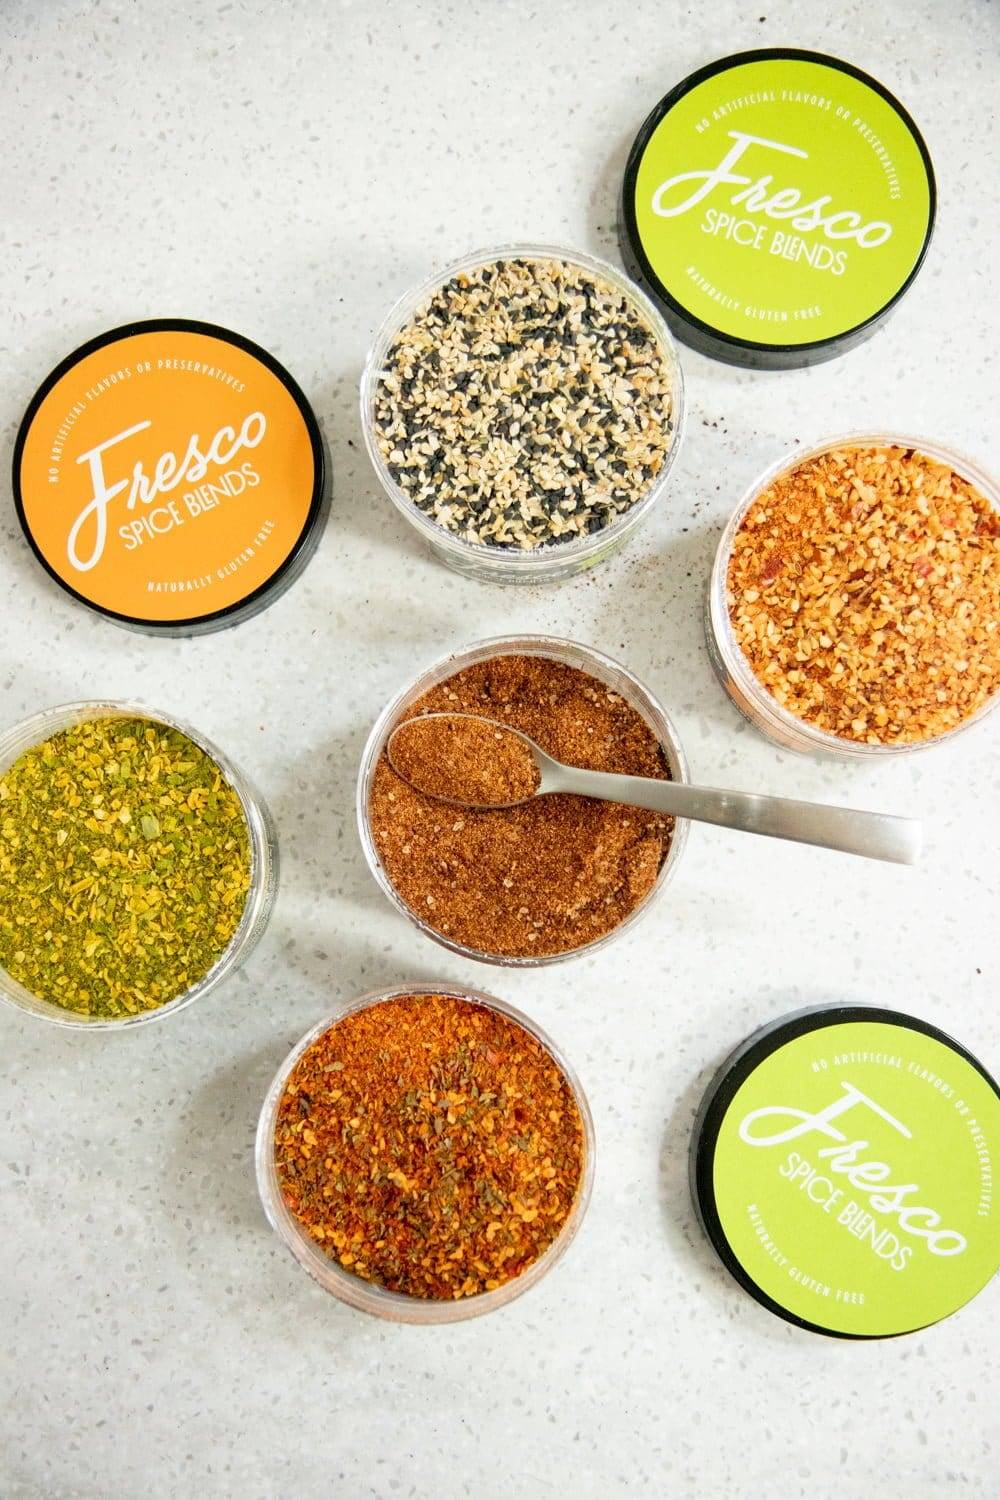 Overhead shot of open Fresco Spice Blends containers, with their lids nearby